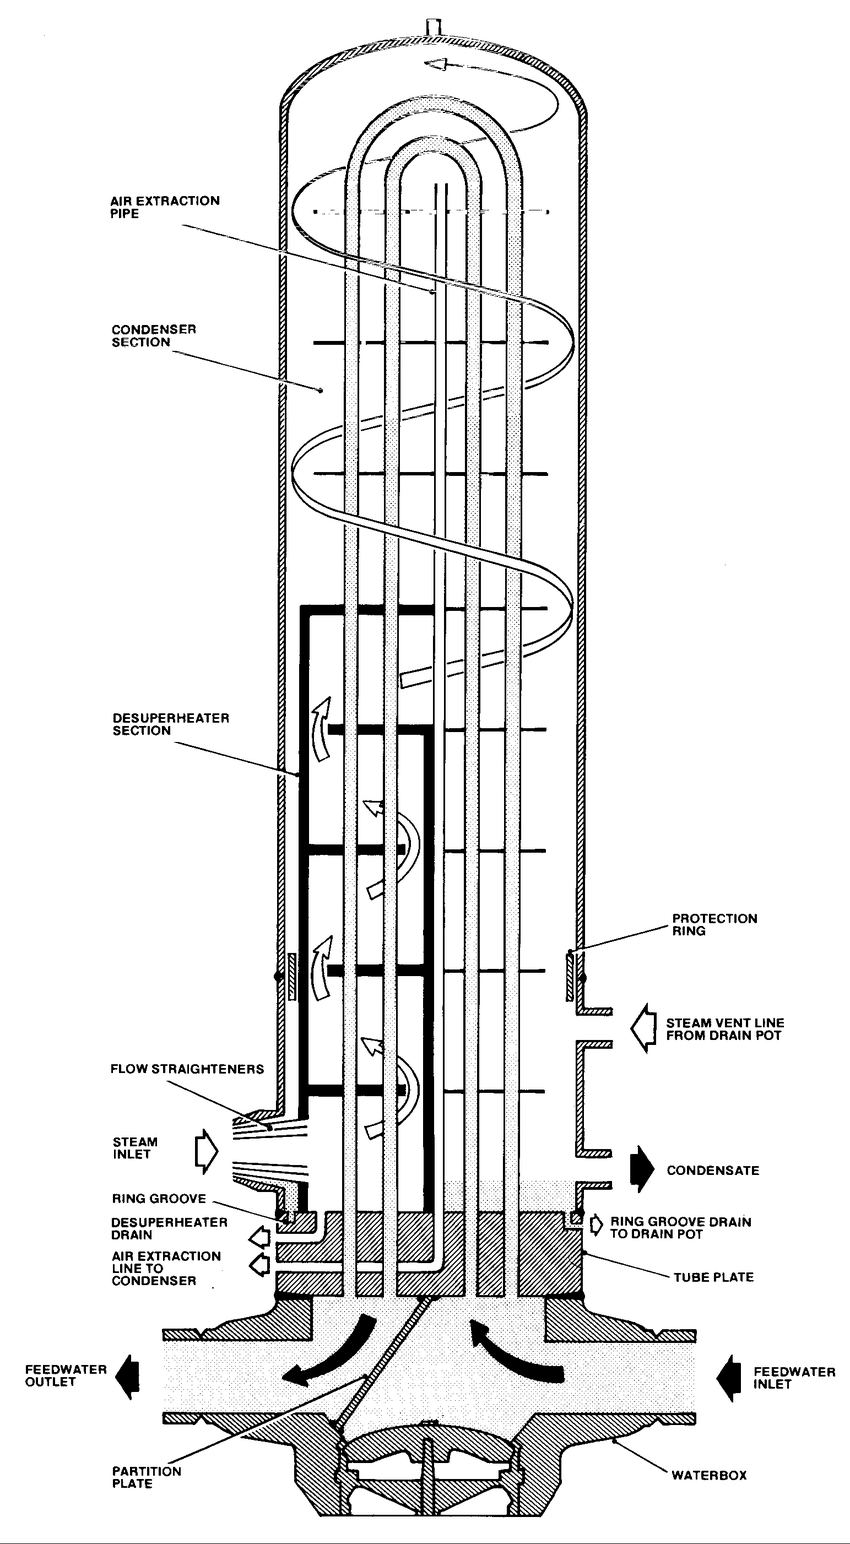 hight resolution of schematic drawing of hp heater at a power station selected for the study